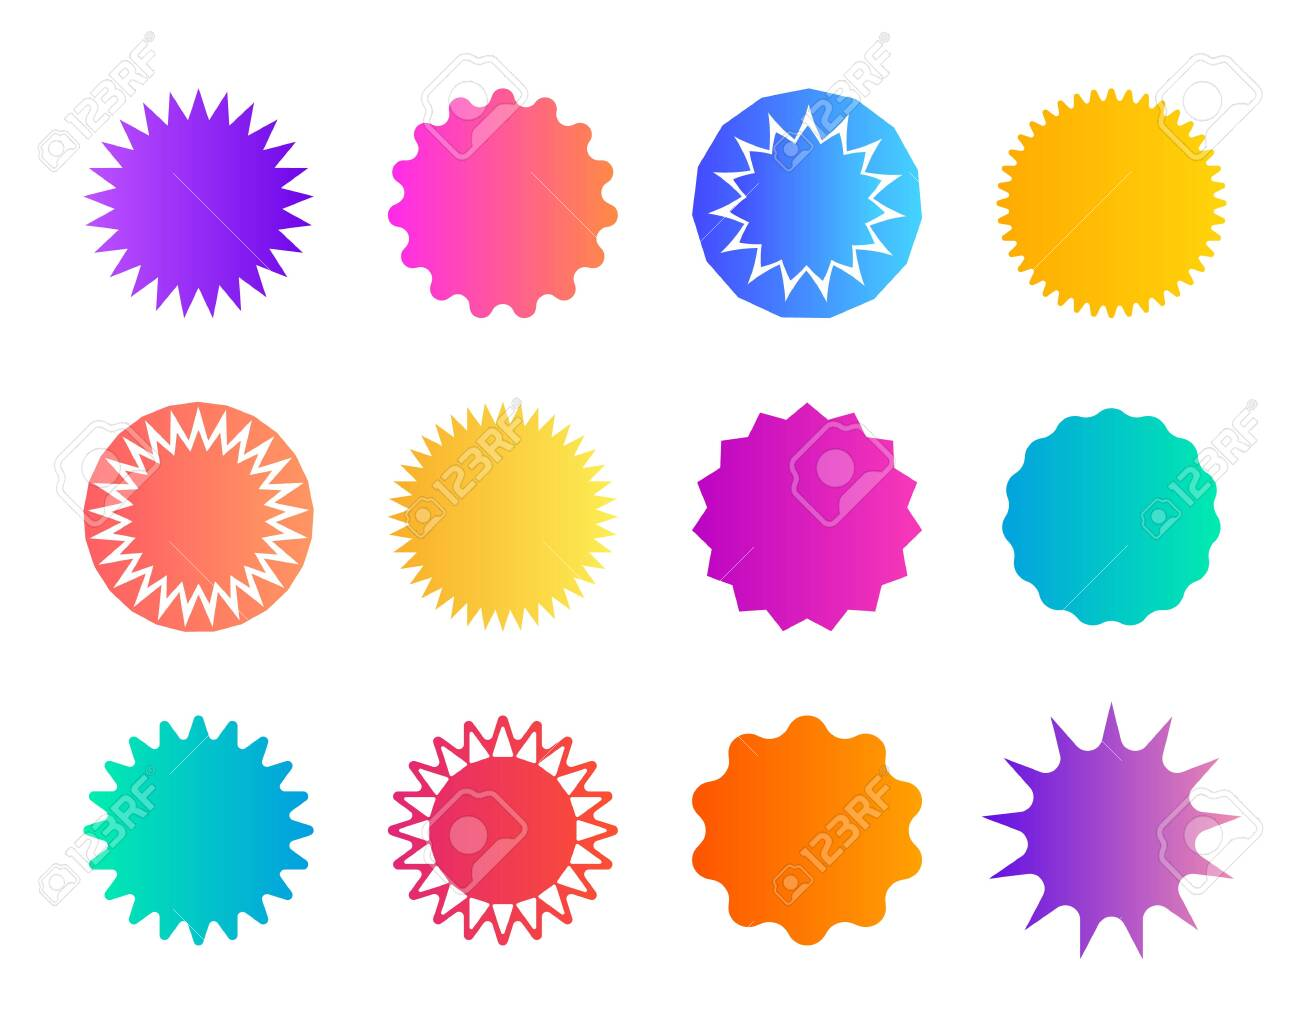 Price sticker. Promo badge starburst. Shape of star for callout, label. Round icons for sale. Circles for button, tag. Zigzag edge on promotion banner. Gradient color coupon. Speech balloons. Vector. - 152647916